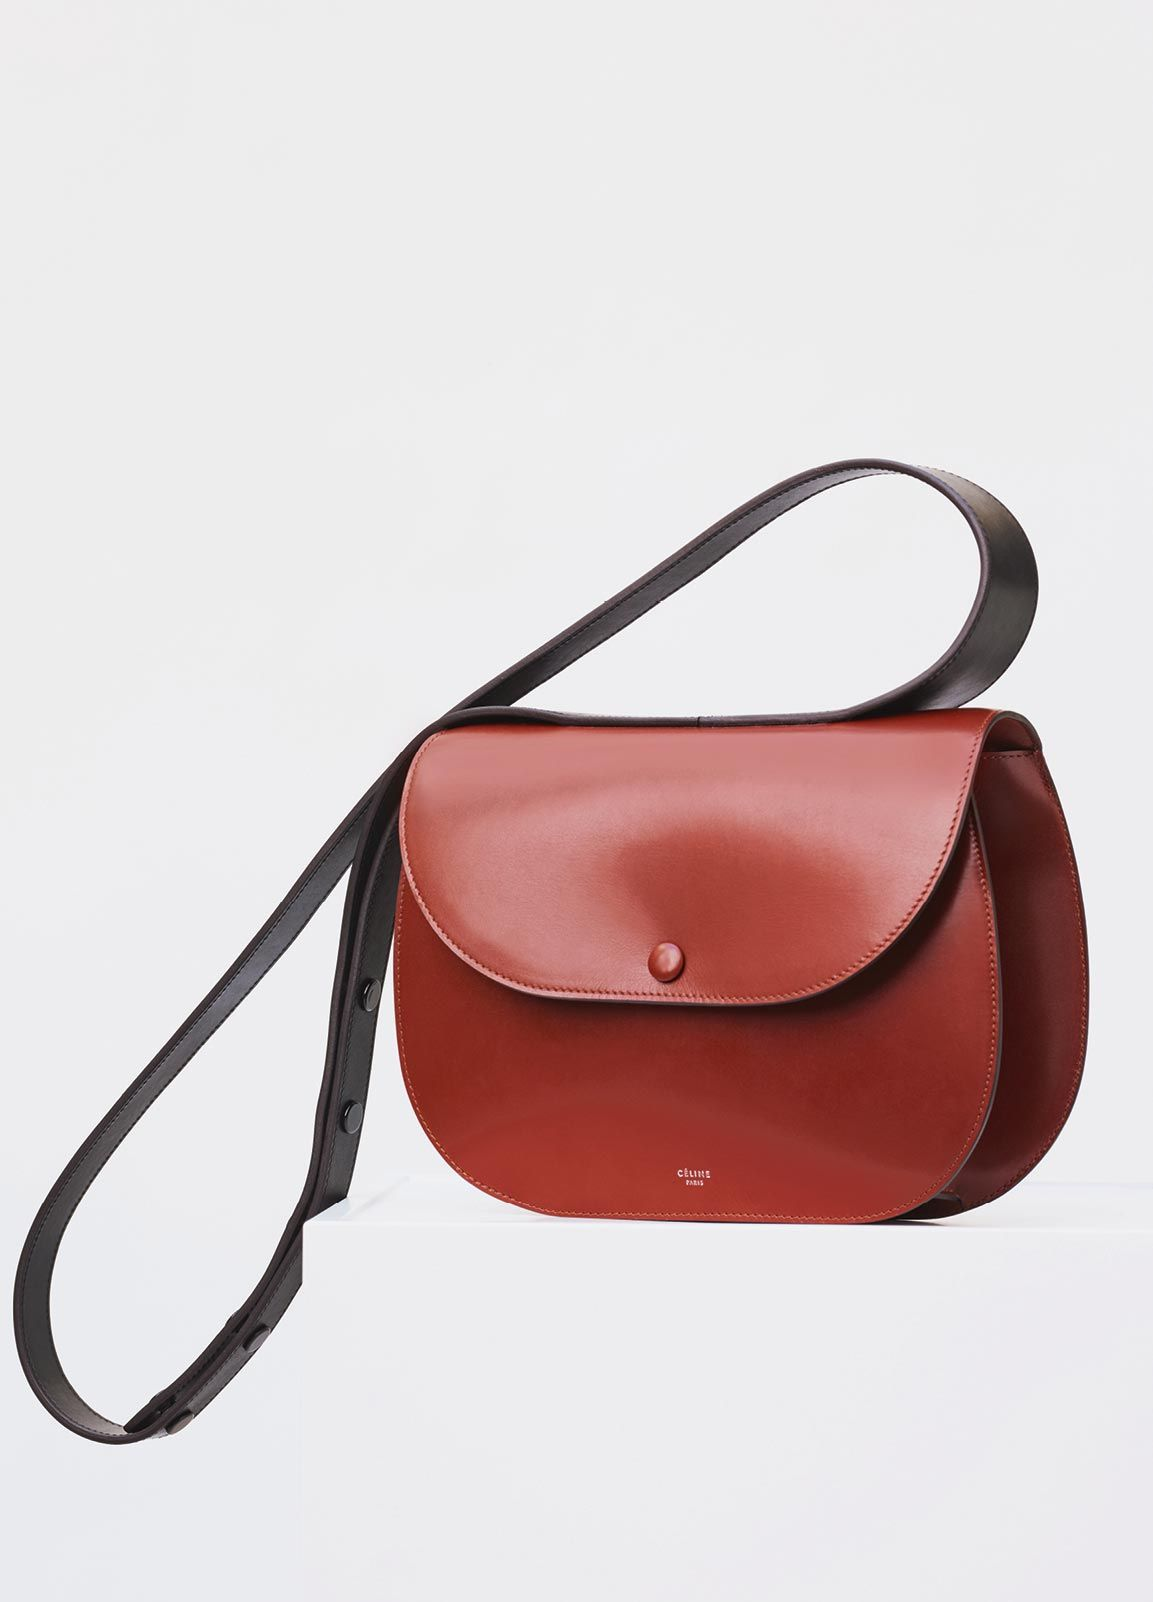 SMALL ROUND BOX SHOULDER BAG IN BURNT RED BOX CALFSKIN ADJUSTABLE STRAP.  ONE FLAT COMPARTMENT AND ONE ZIPPER POCKET INSIDE. CALFSKIN AND LAMBSKIN  LINING ... ed40bcc617595